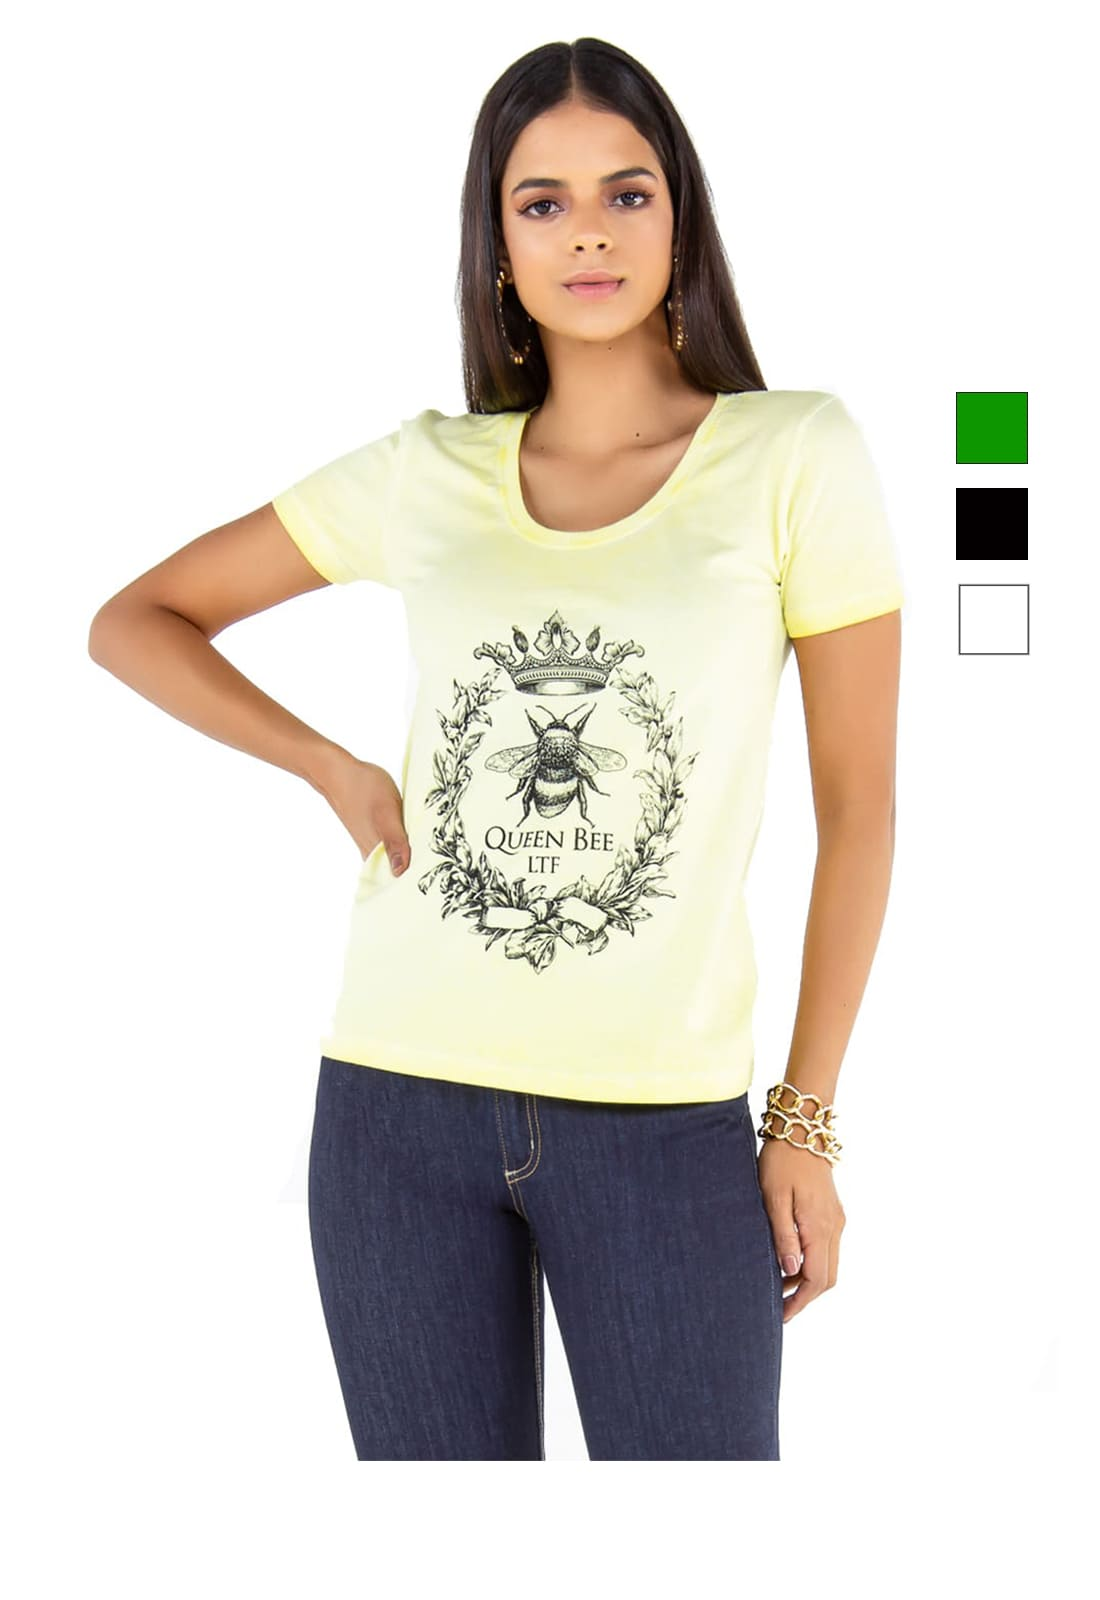 T-shirt Camiseta Feminina Latifundio Queen Bee